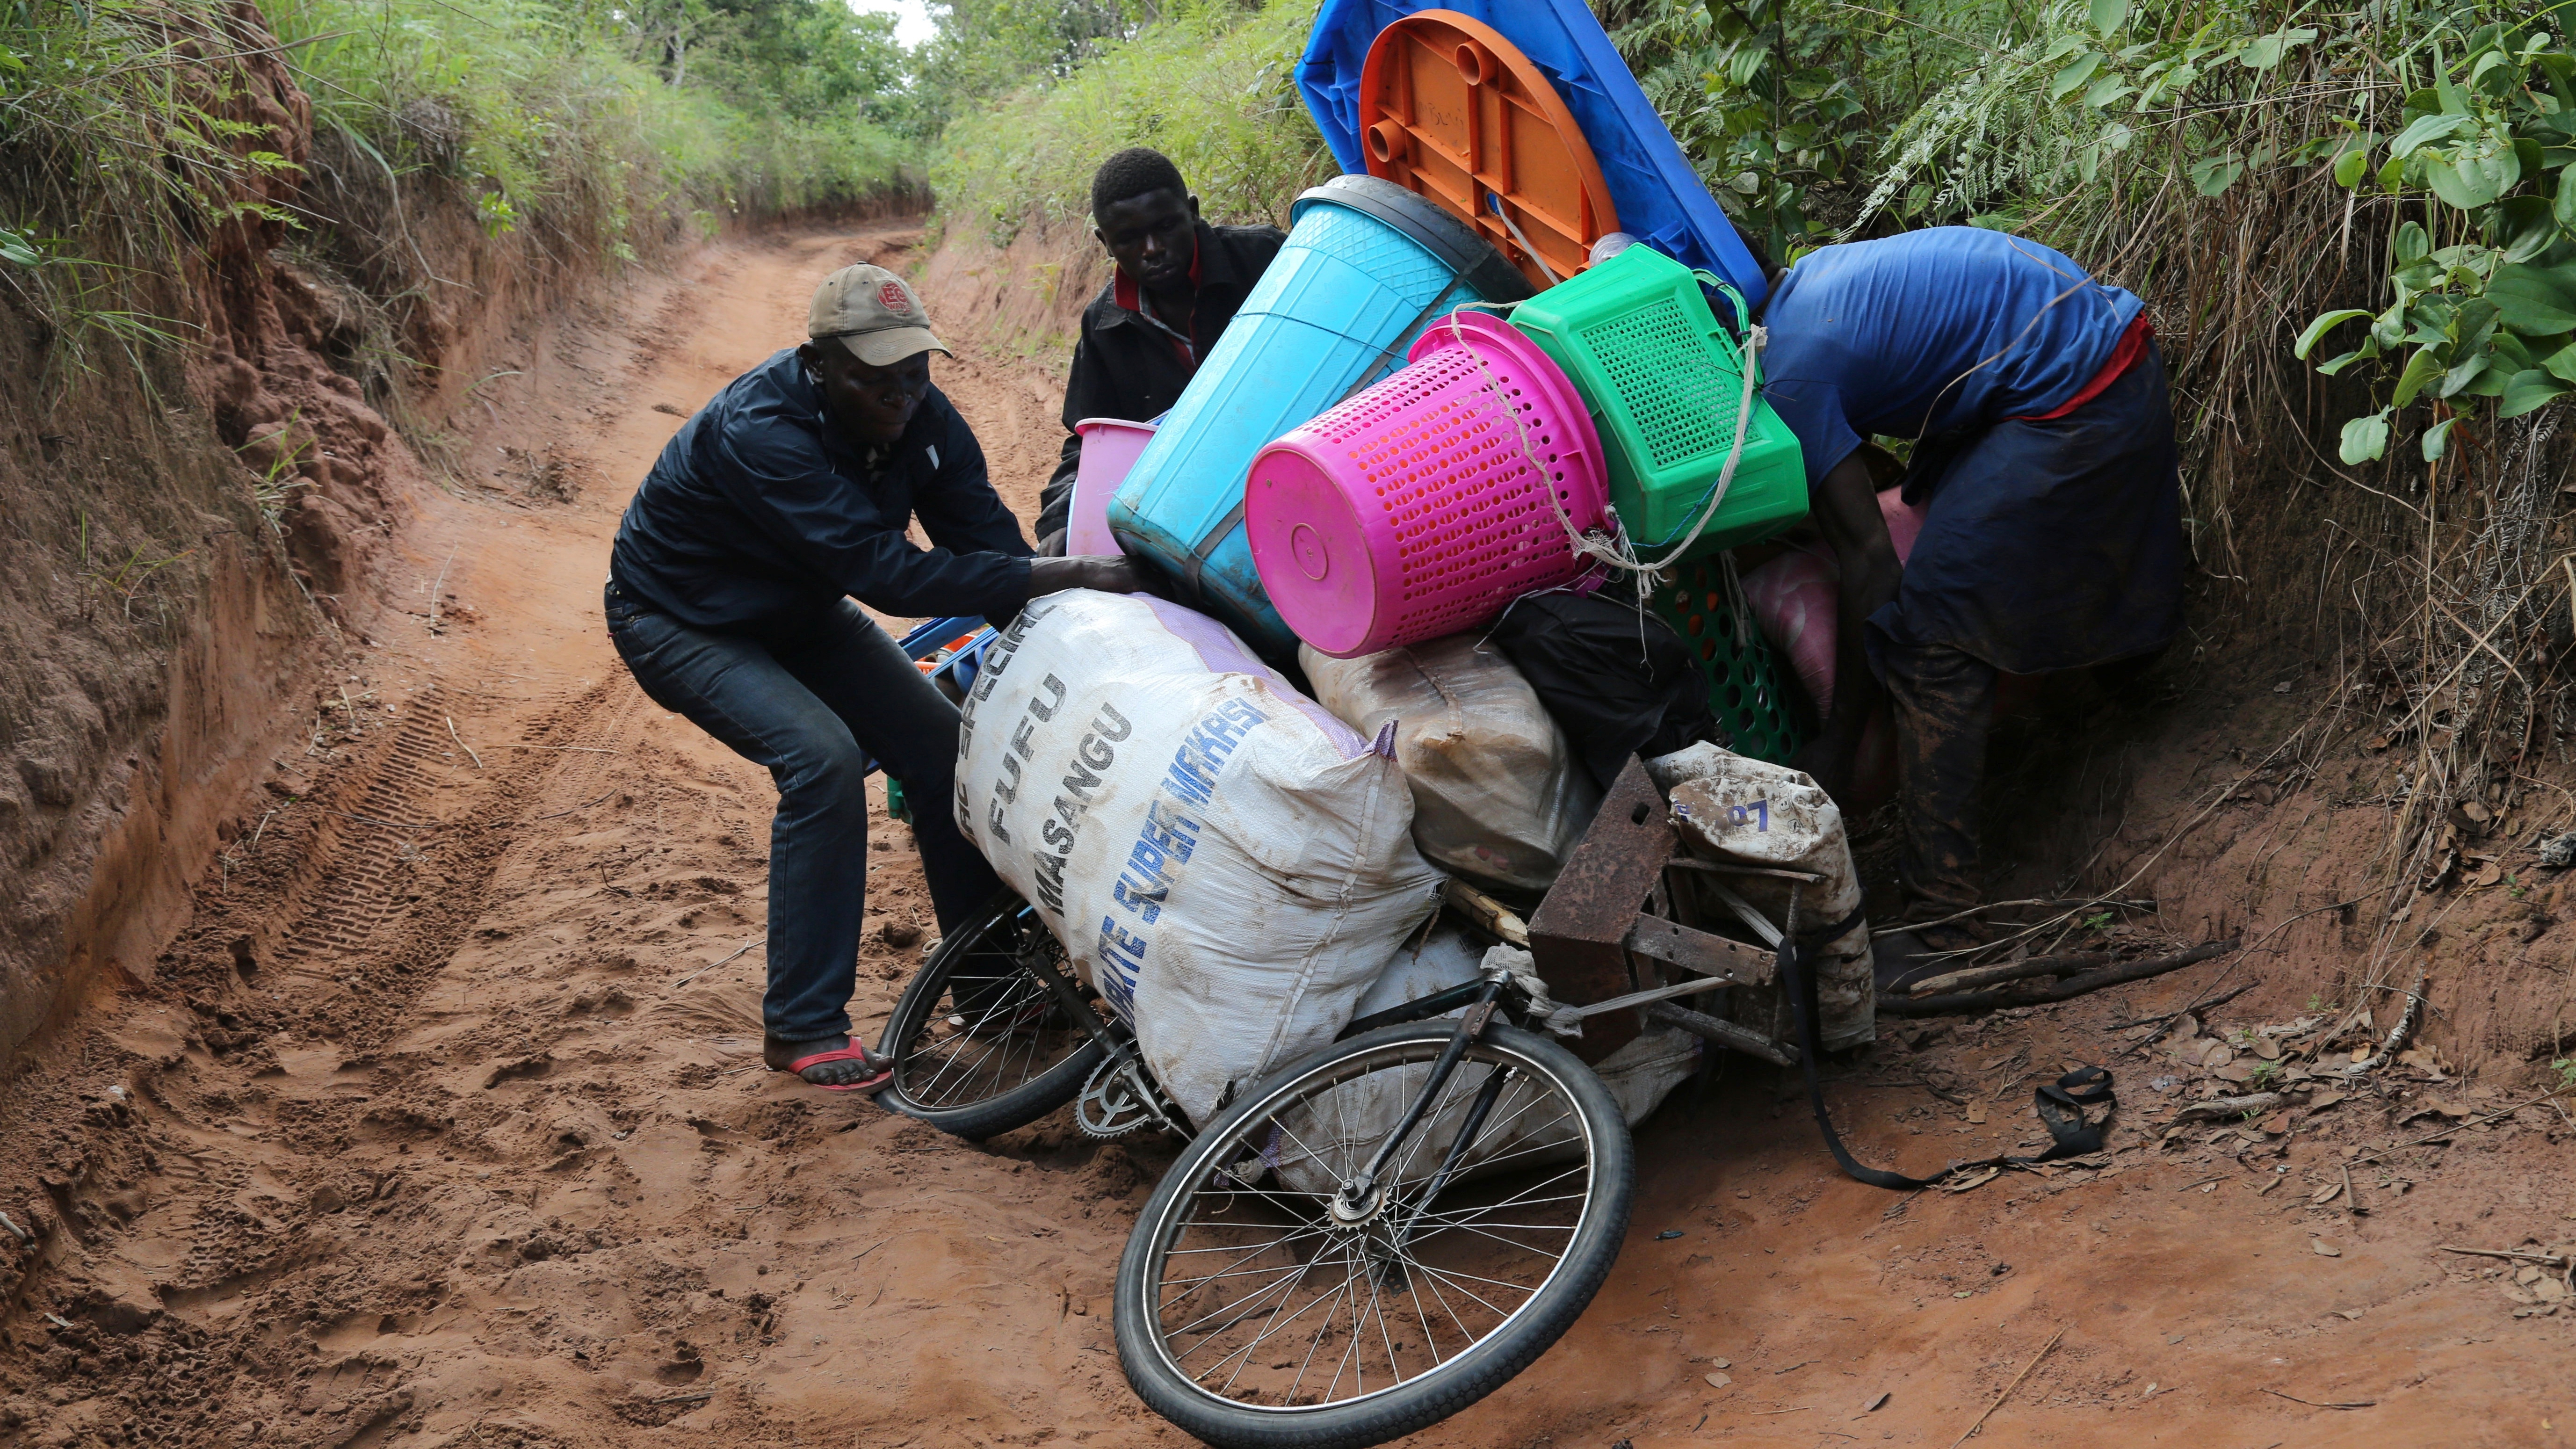 Migration: Only 20% of migrants leave Africa, AU to research data.